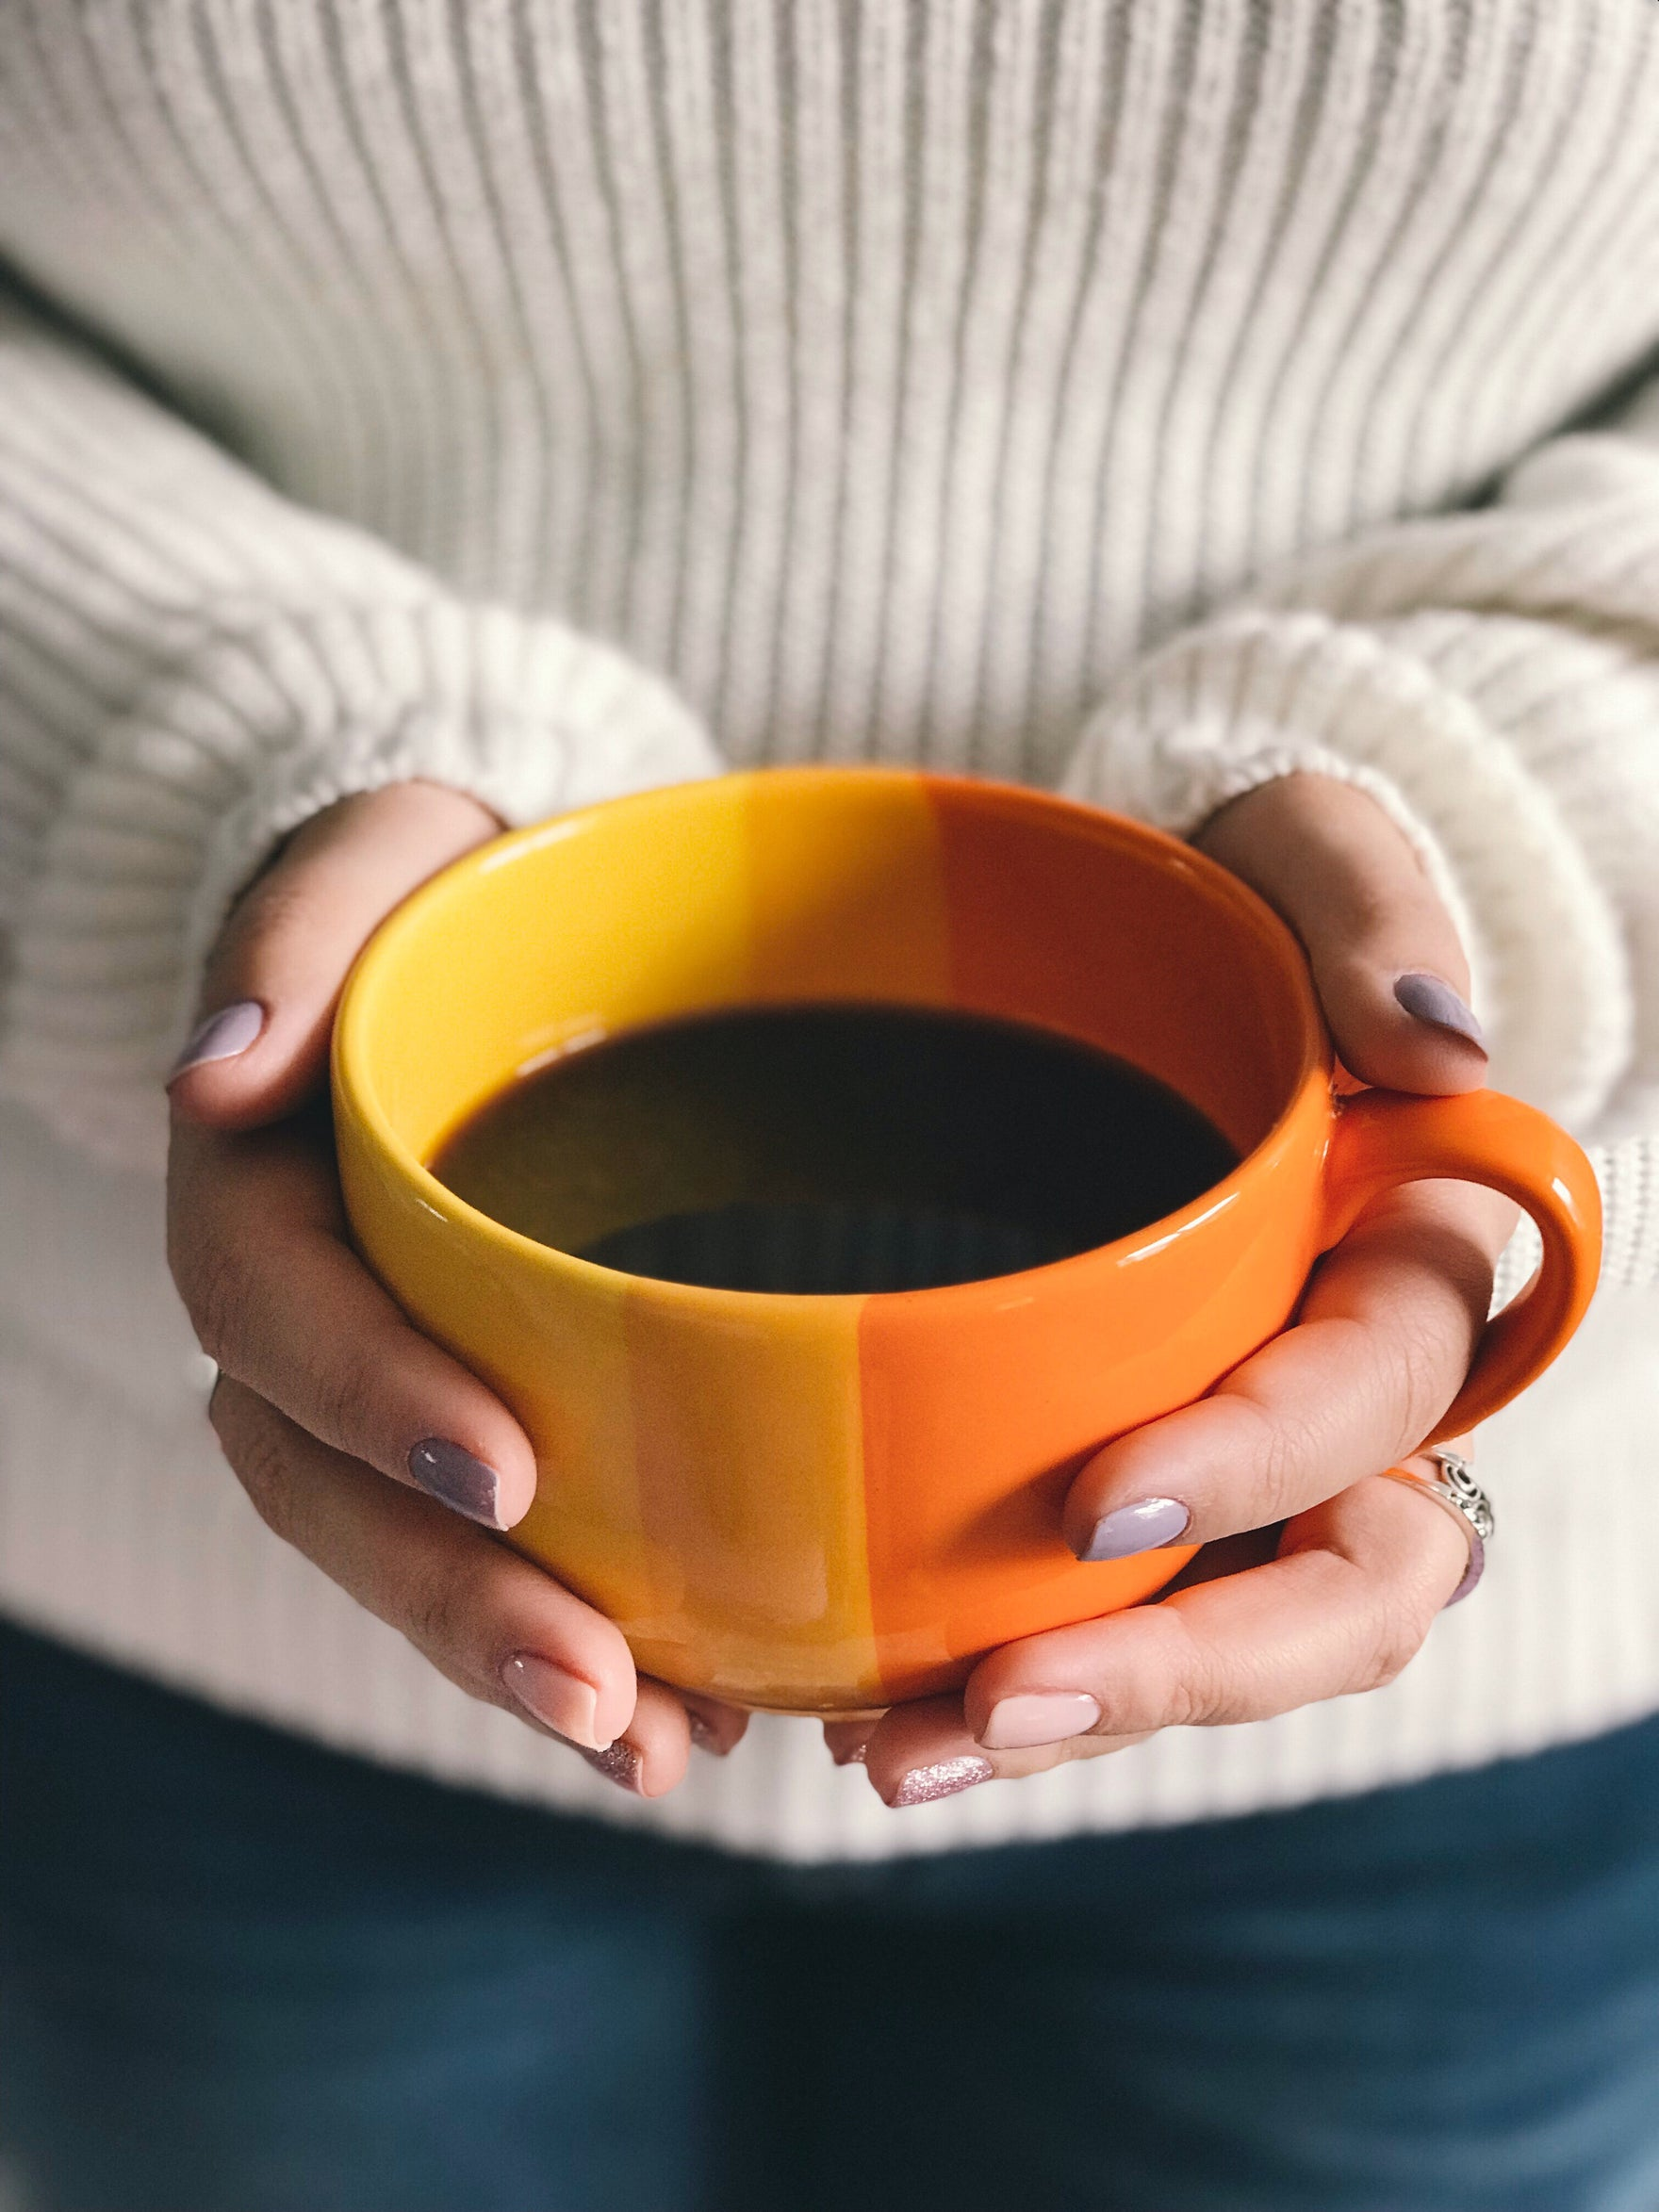 3 Ways Coffee Helps You With Losing Weight - What to Know